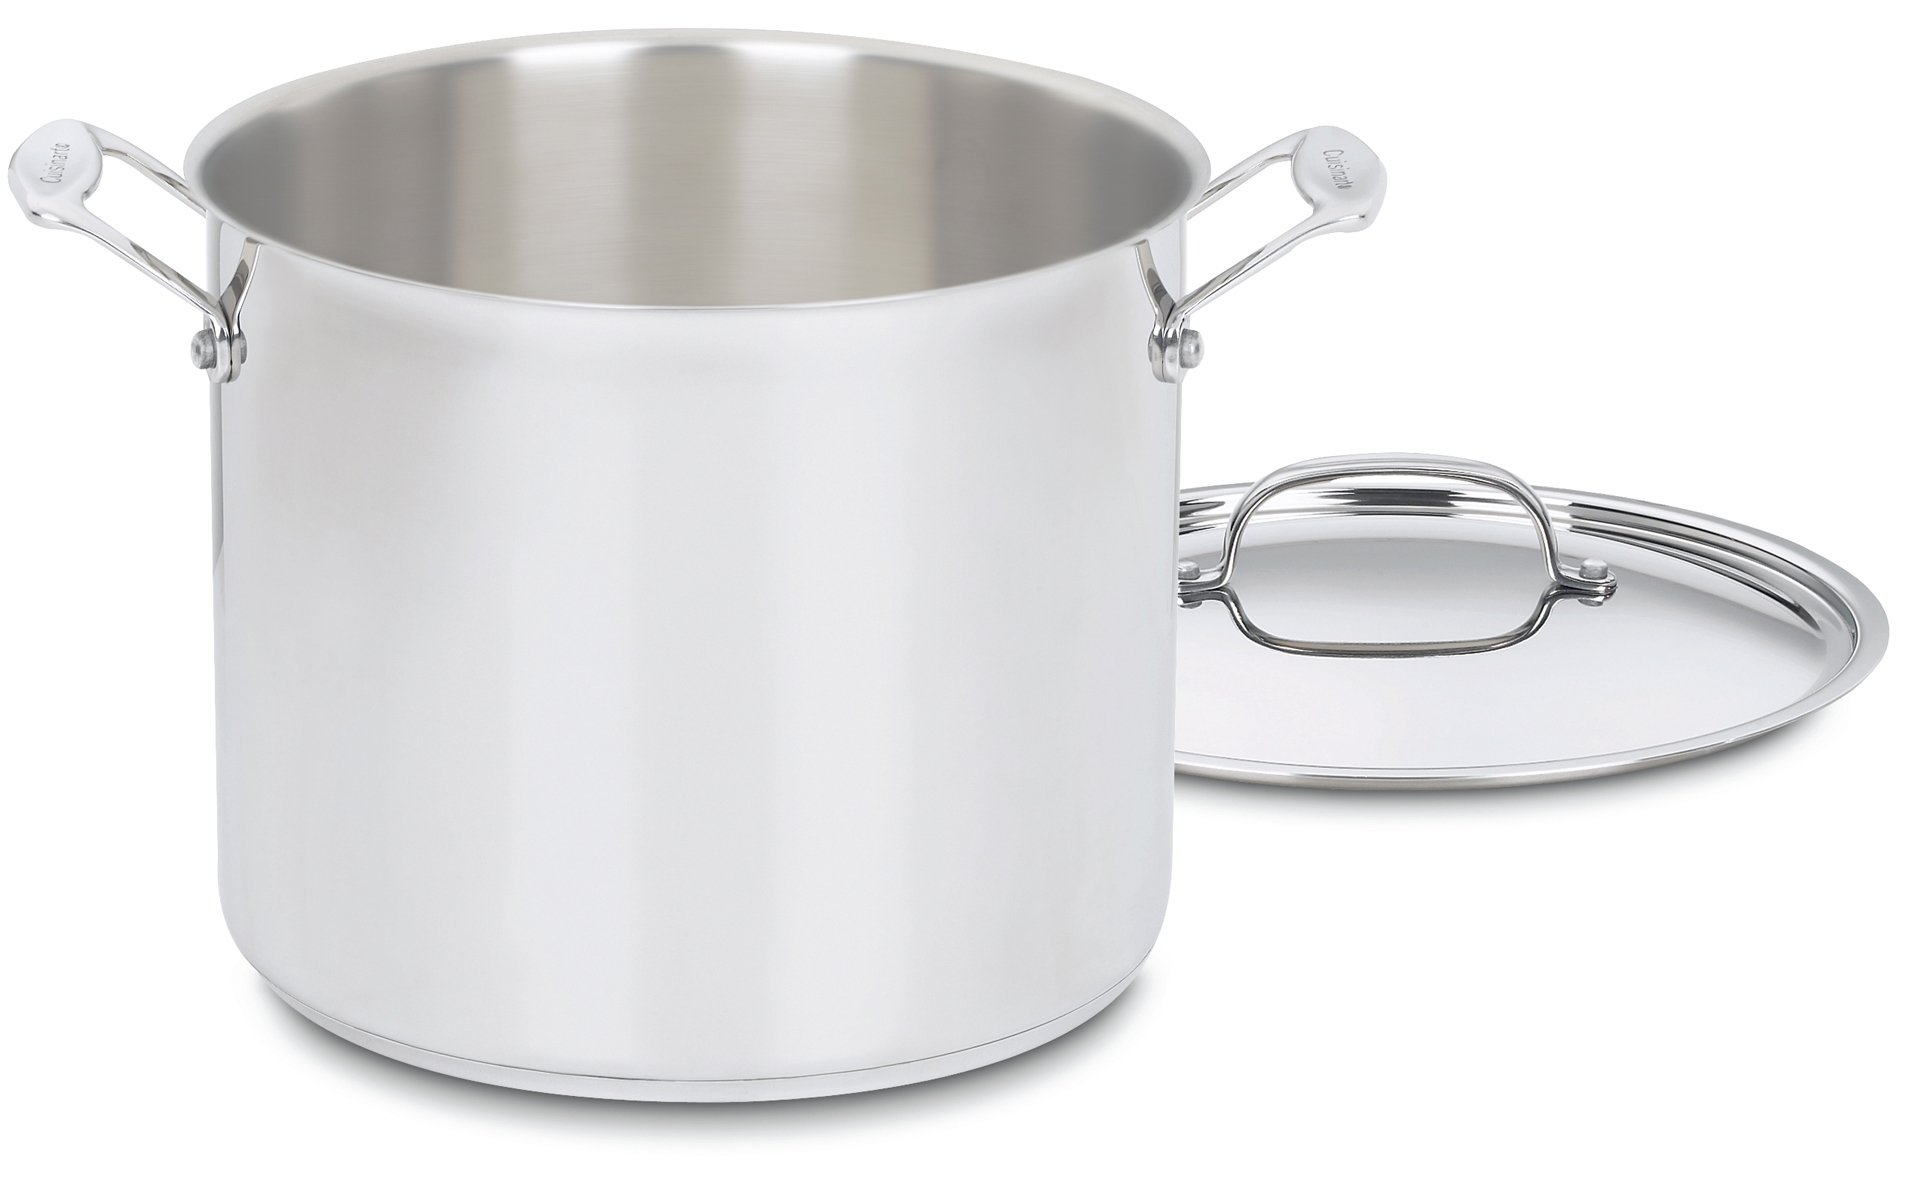 Cuisinart 766-26 Chef's Classic 12-Quart Stockpot with Cover by Cuisinart